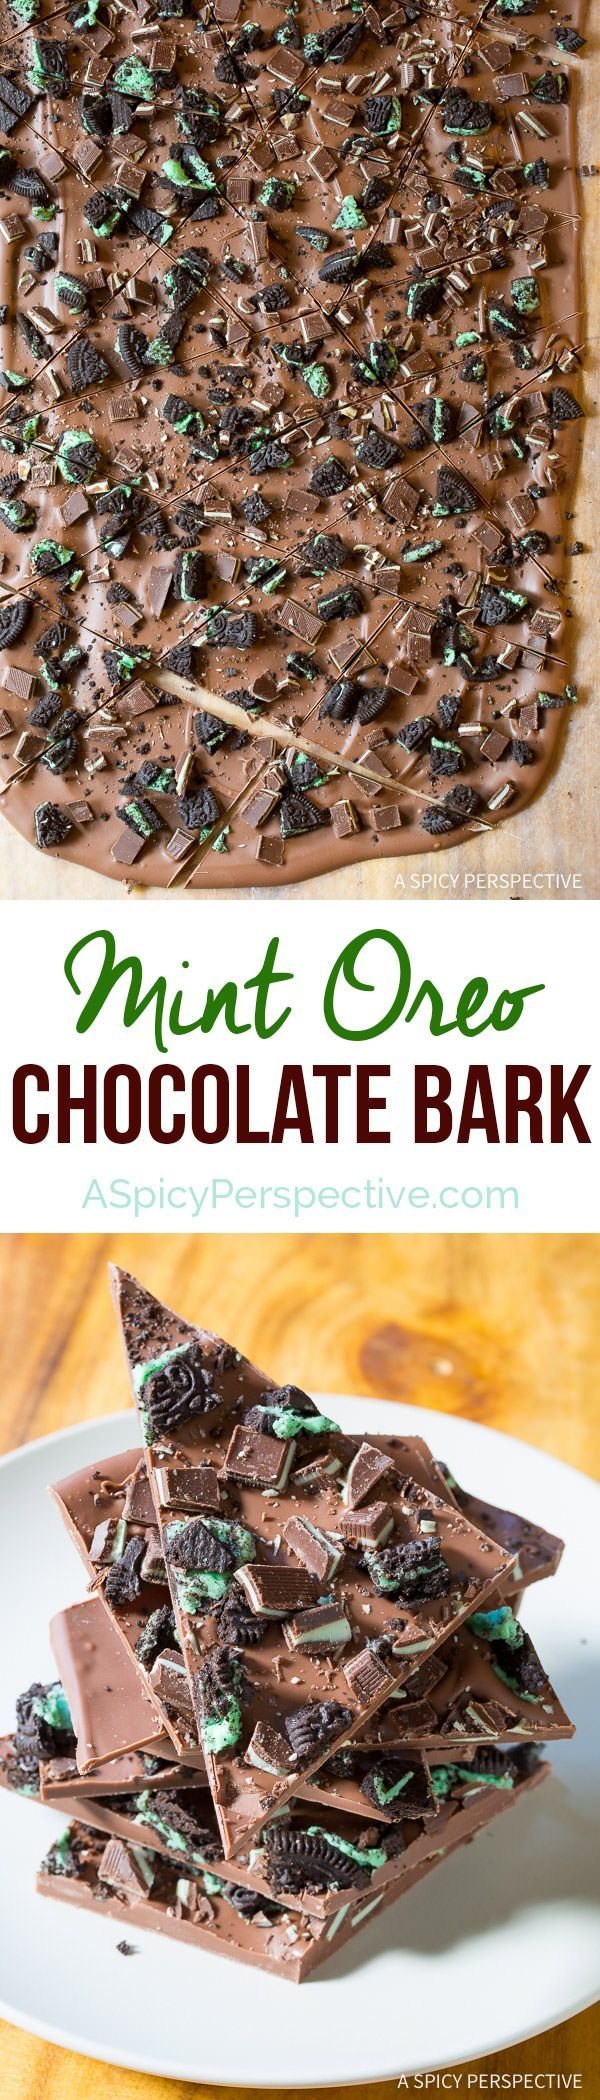 Amazing 3-Ingredient Mint Oreo Chocolate Bark Recipe on http://ASpicyPerspective.com. Gift for holiday parties and edible gifts!